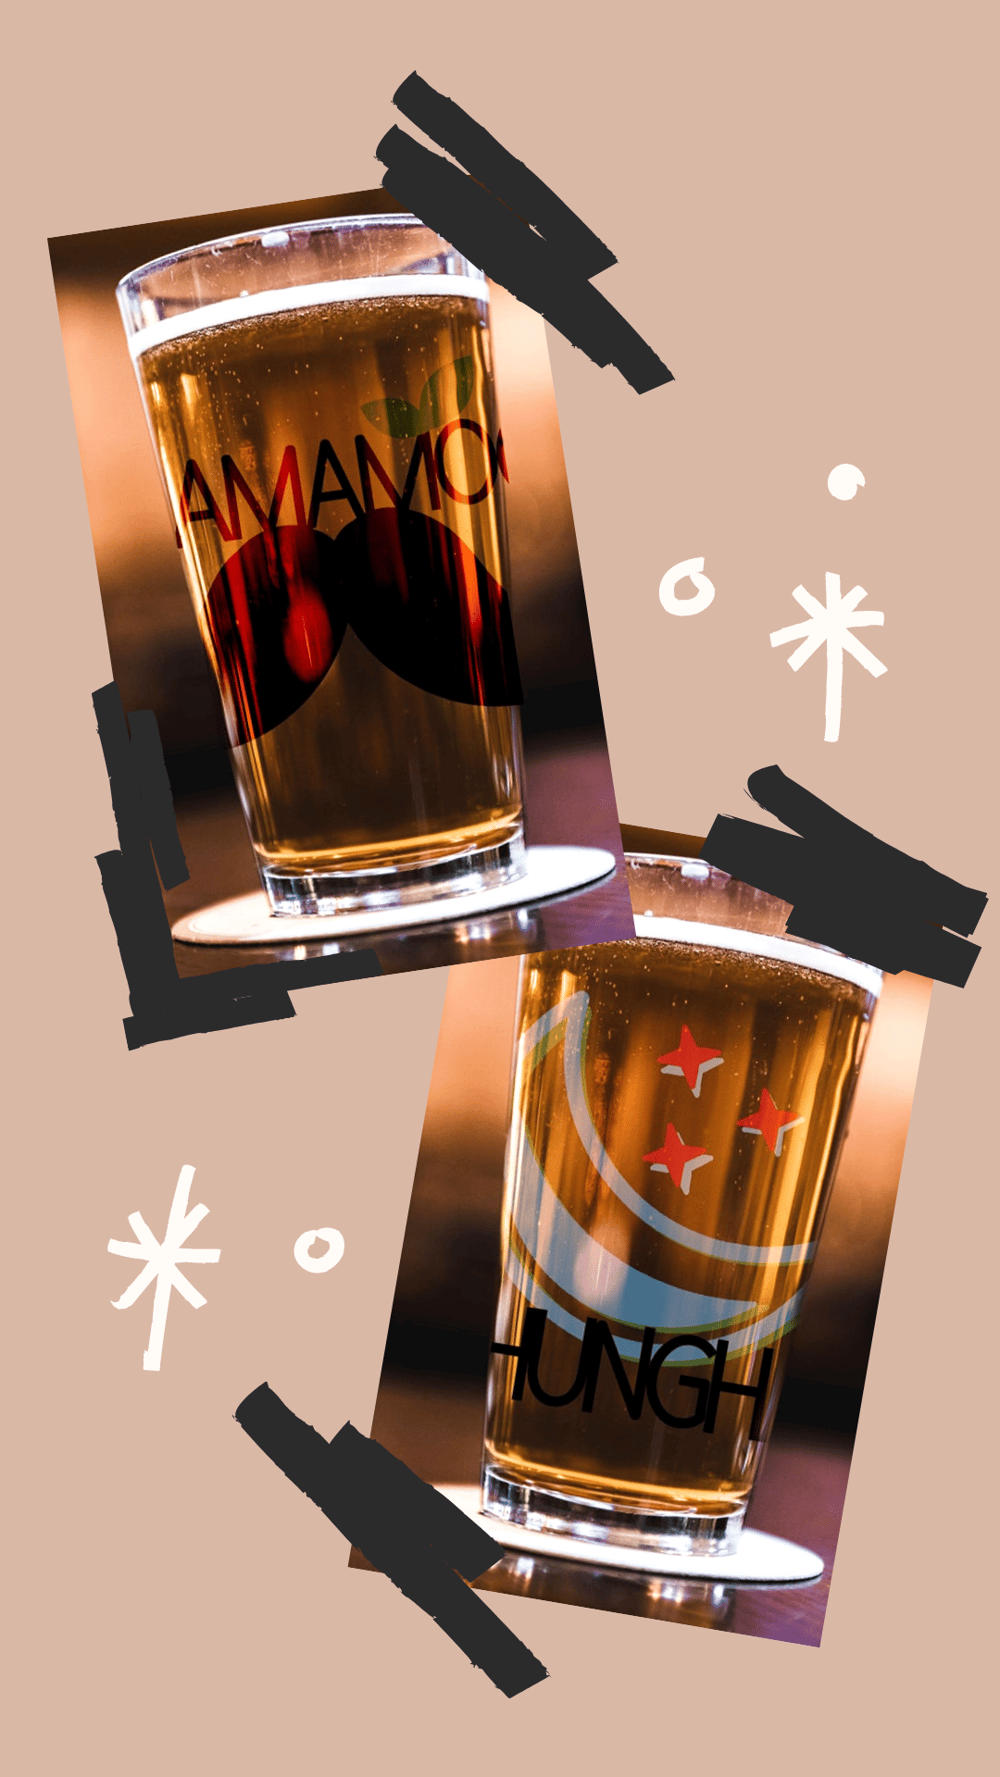 Pint Glass Insta Story - image 2 - student project